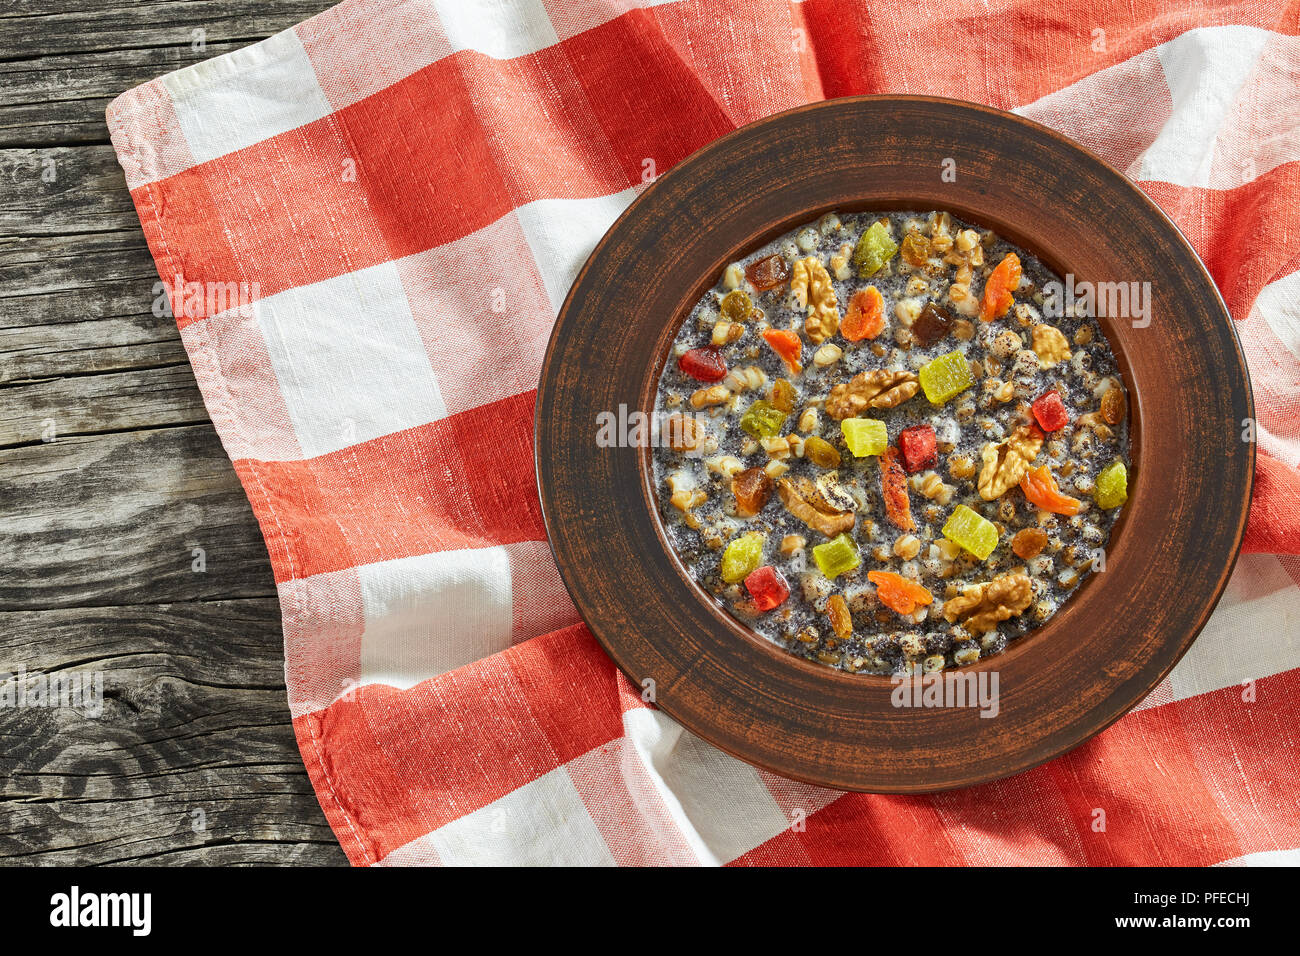 kutya or Sweet Wheat Berry Pudding, traditional Christmas dish in clay rustic bowl on table cloth on dark wooden table, view from above - Stock Image